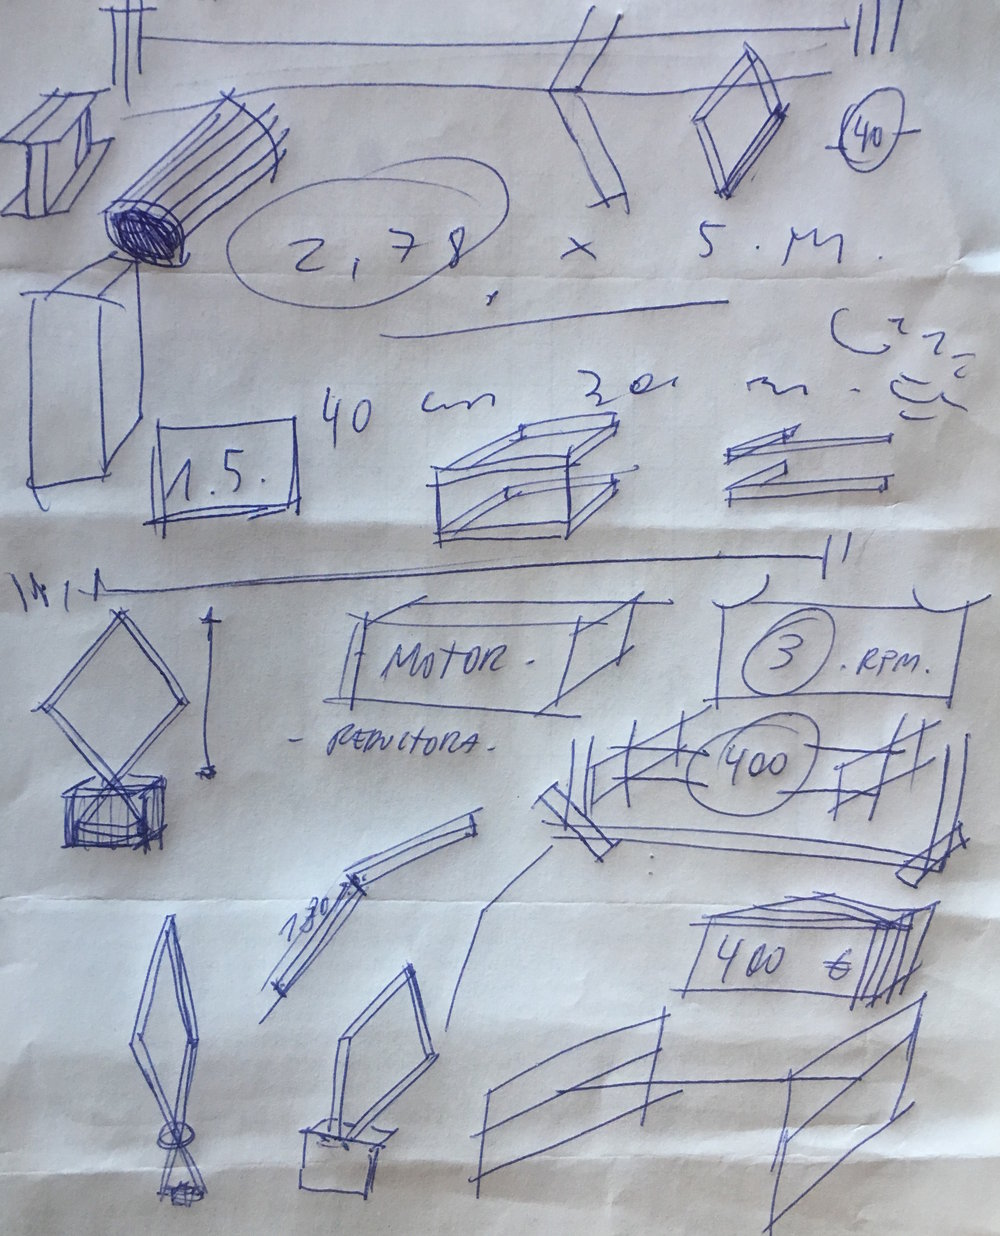 Lolo y Sosaku's first sketches for  Omul mulțime/Hombre masa